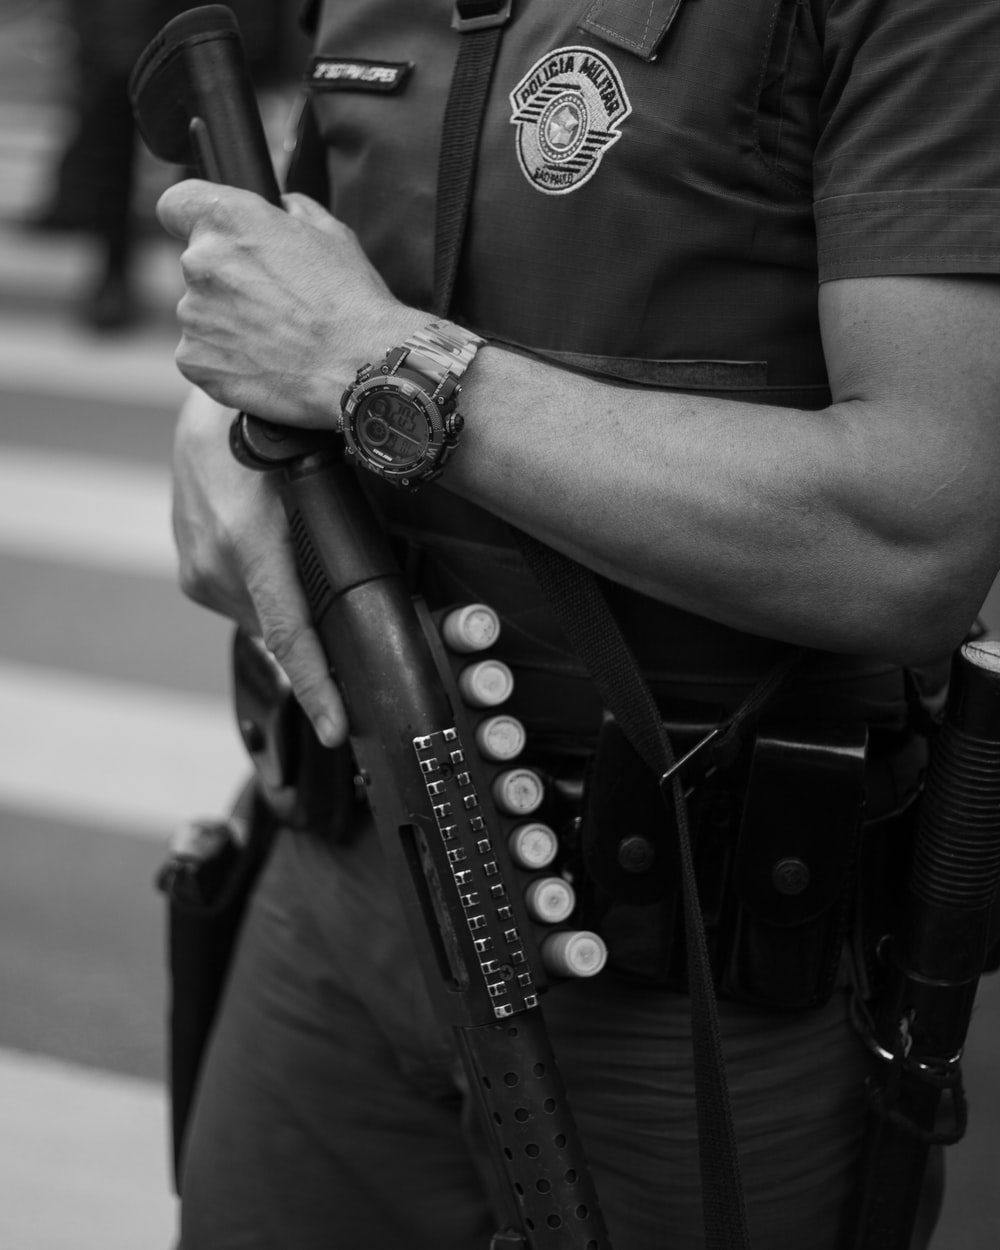 grayscale photo of man in police uniform holding rifle